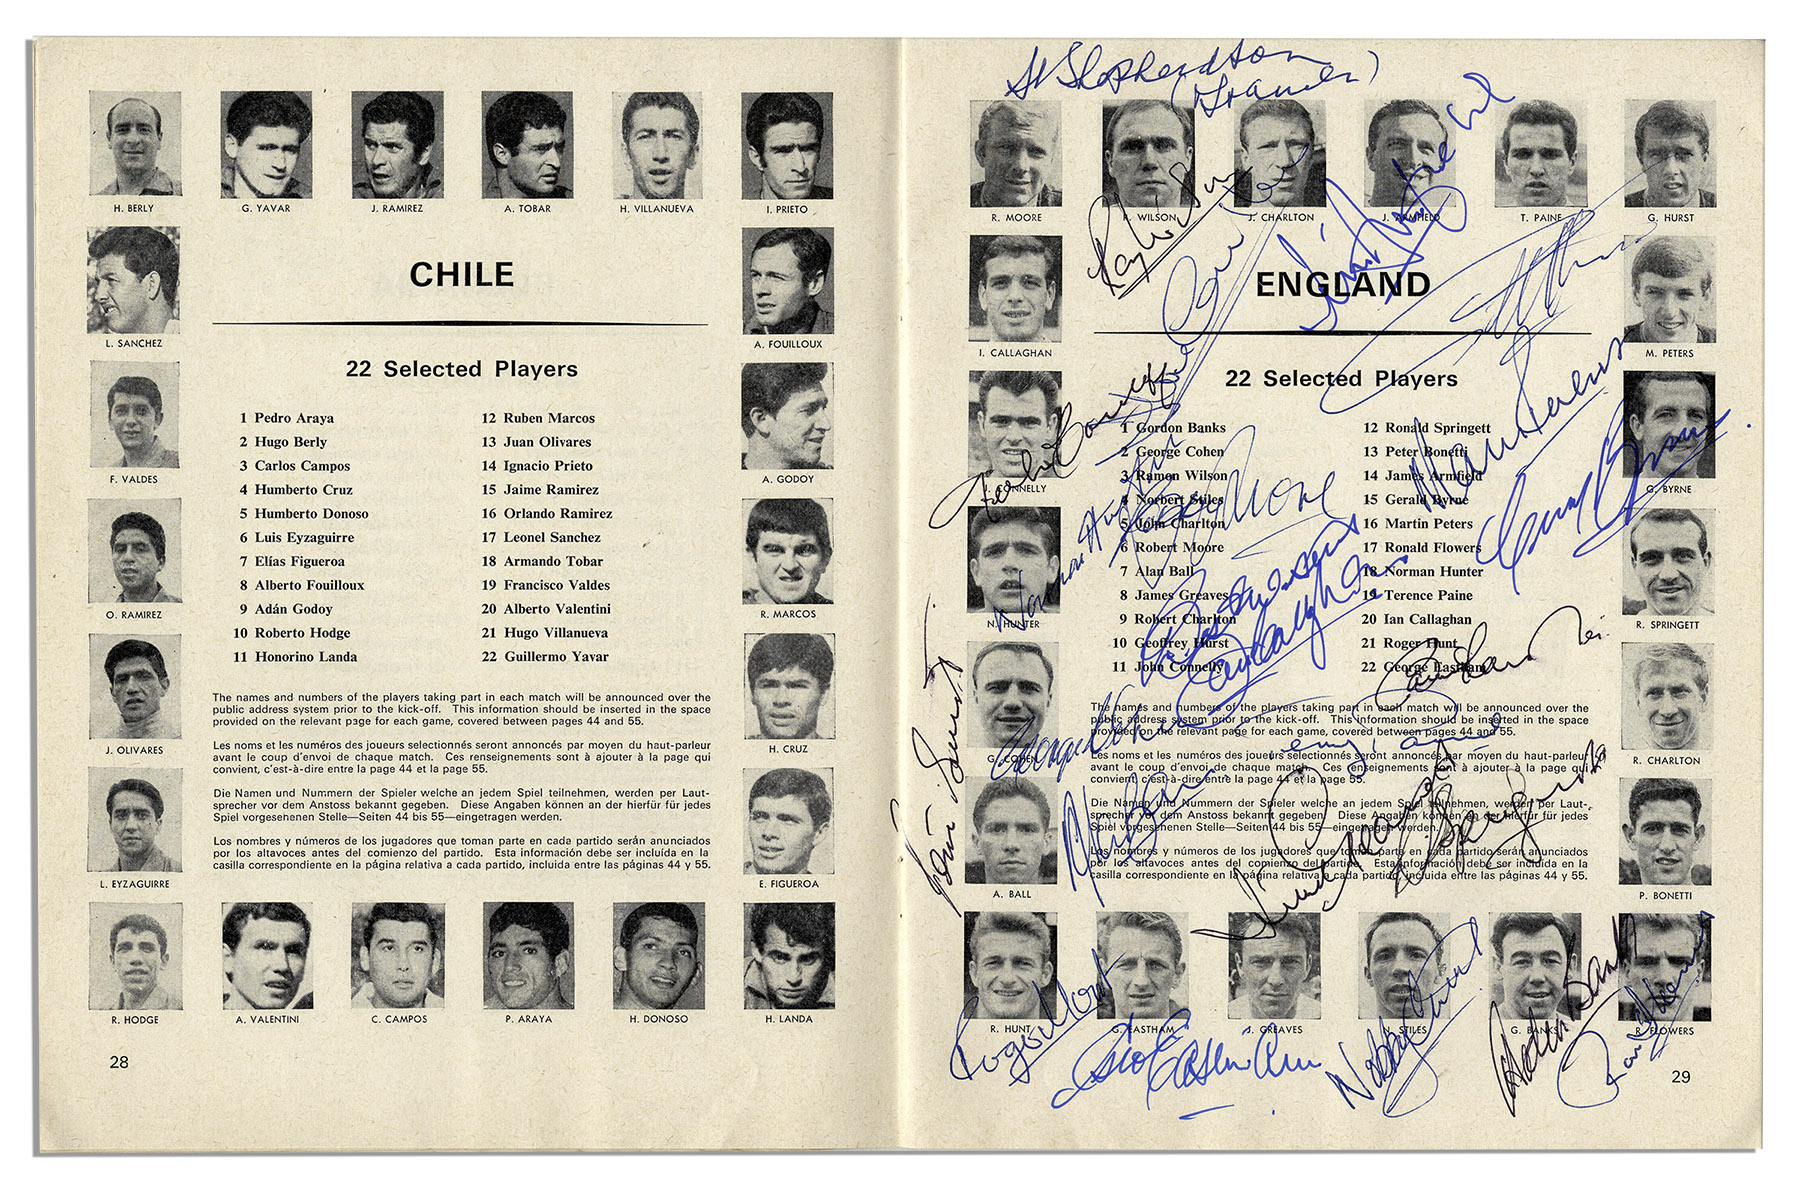 1966 FIFA World Cup Program Signed By Its Champions The England Squad With